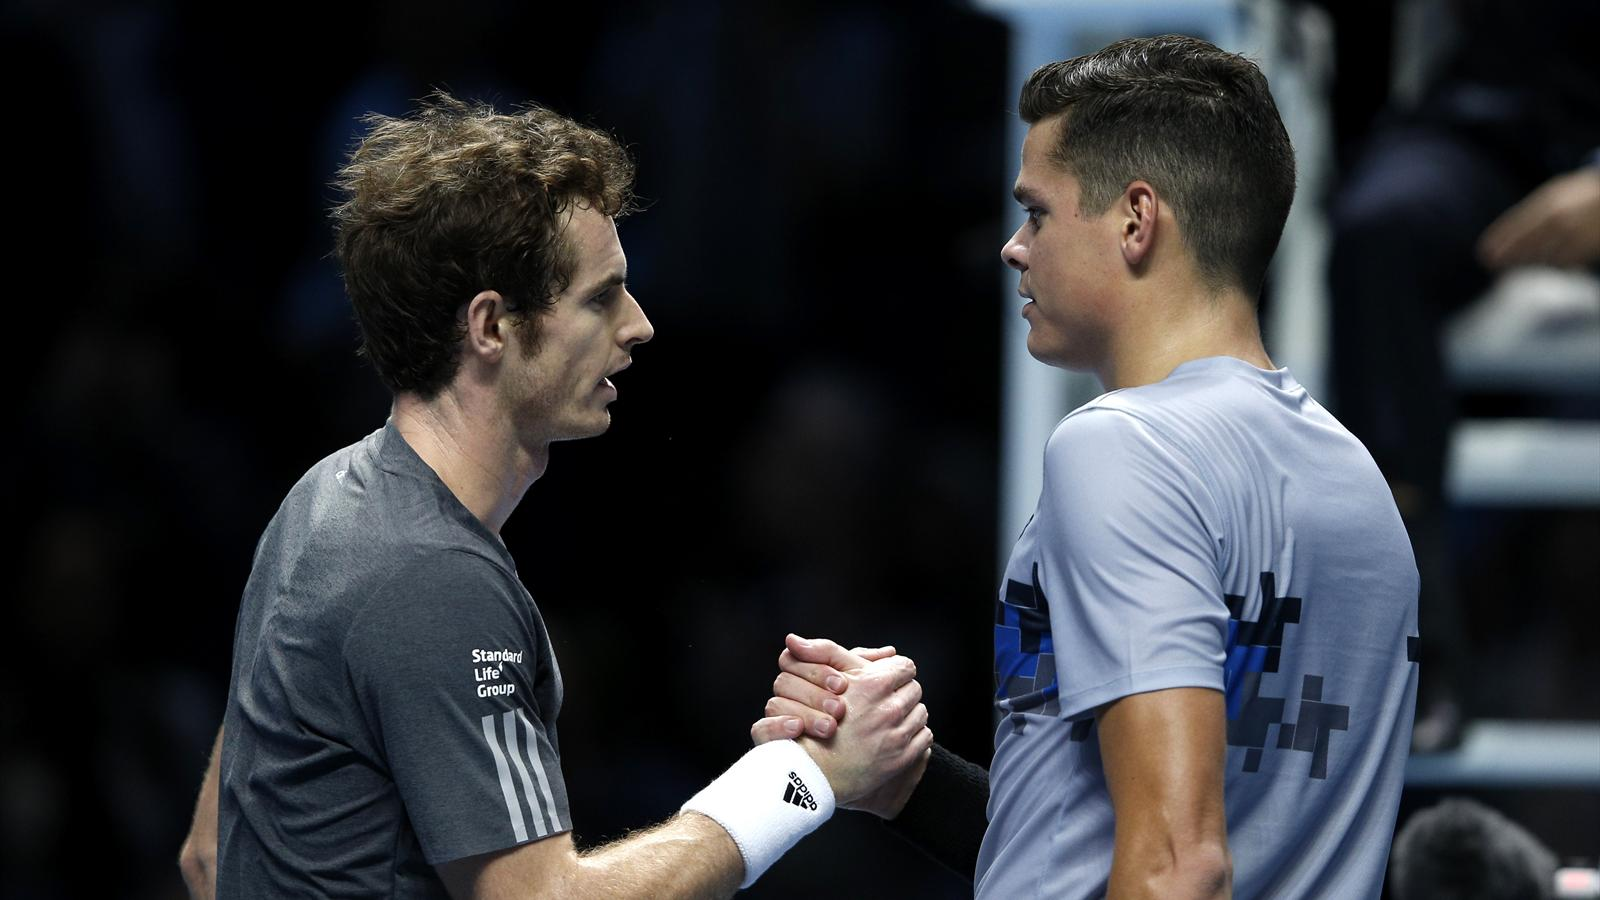 Andy Murray and Milos Raonic at the ATP World Tour final in London in 2014